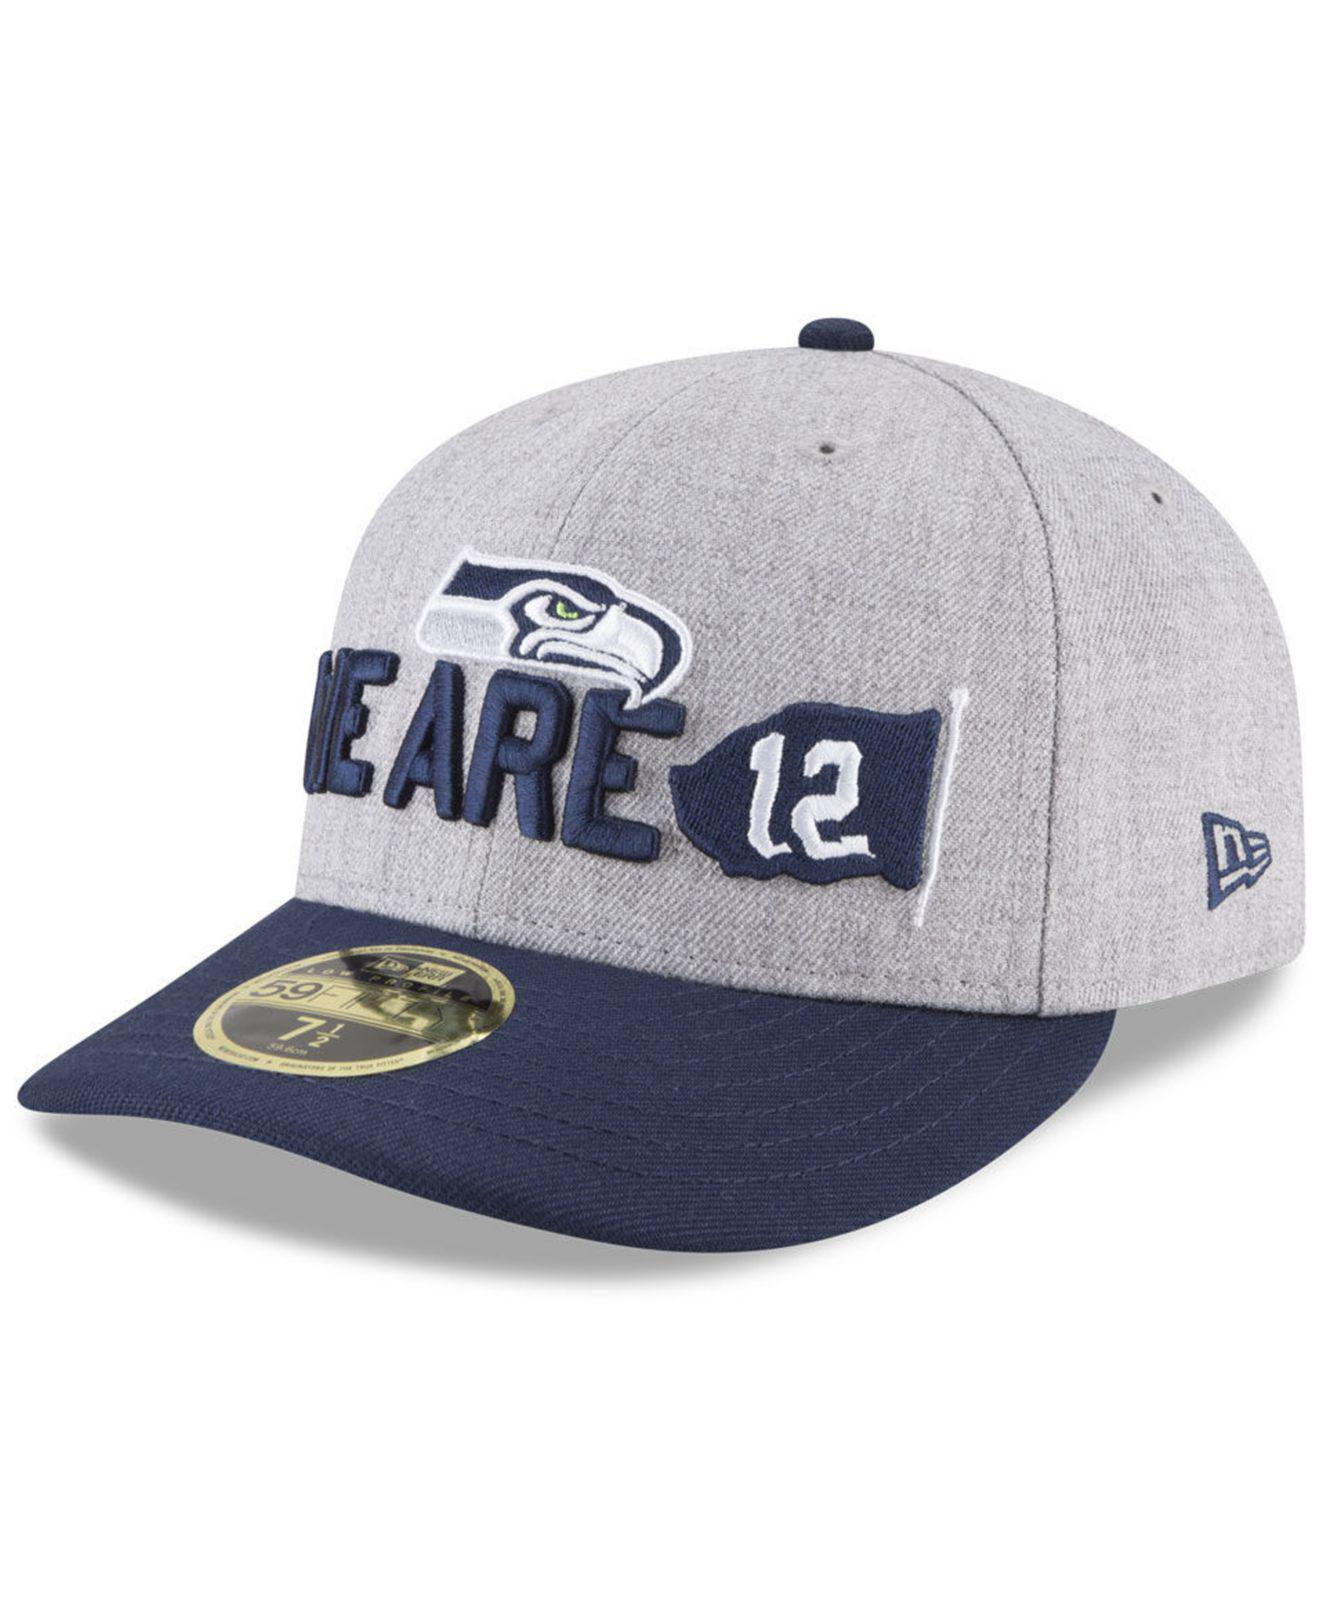 brand new 0b9a8 a9882 KTZ. Men s Blue Seattle Seahawks Draft Low Profile 59fifty Fitted Cap